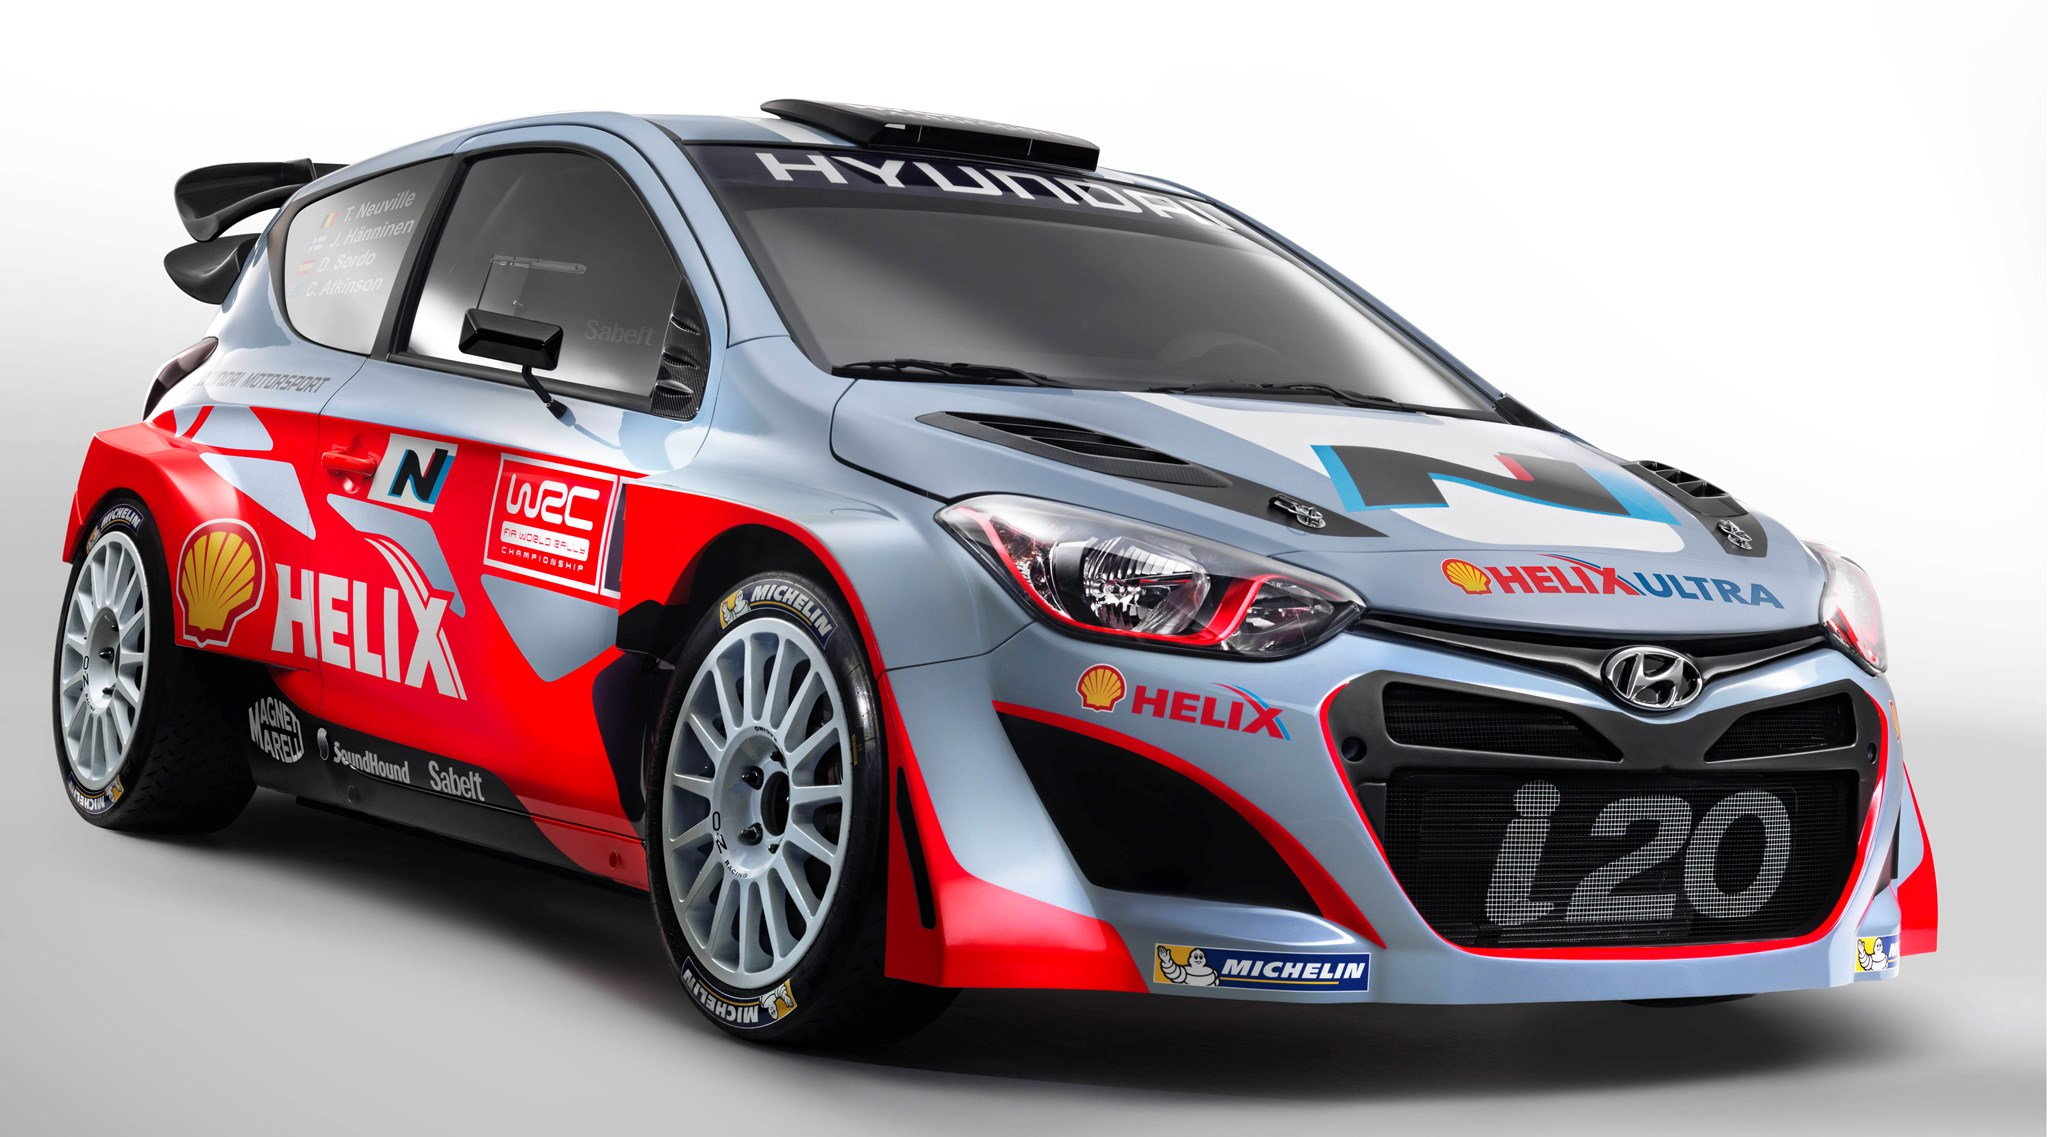 hyundai announces shell as partner for 2014 rally return by car magazine. Black Bedroom Furniture Sets. Home Design Ideas